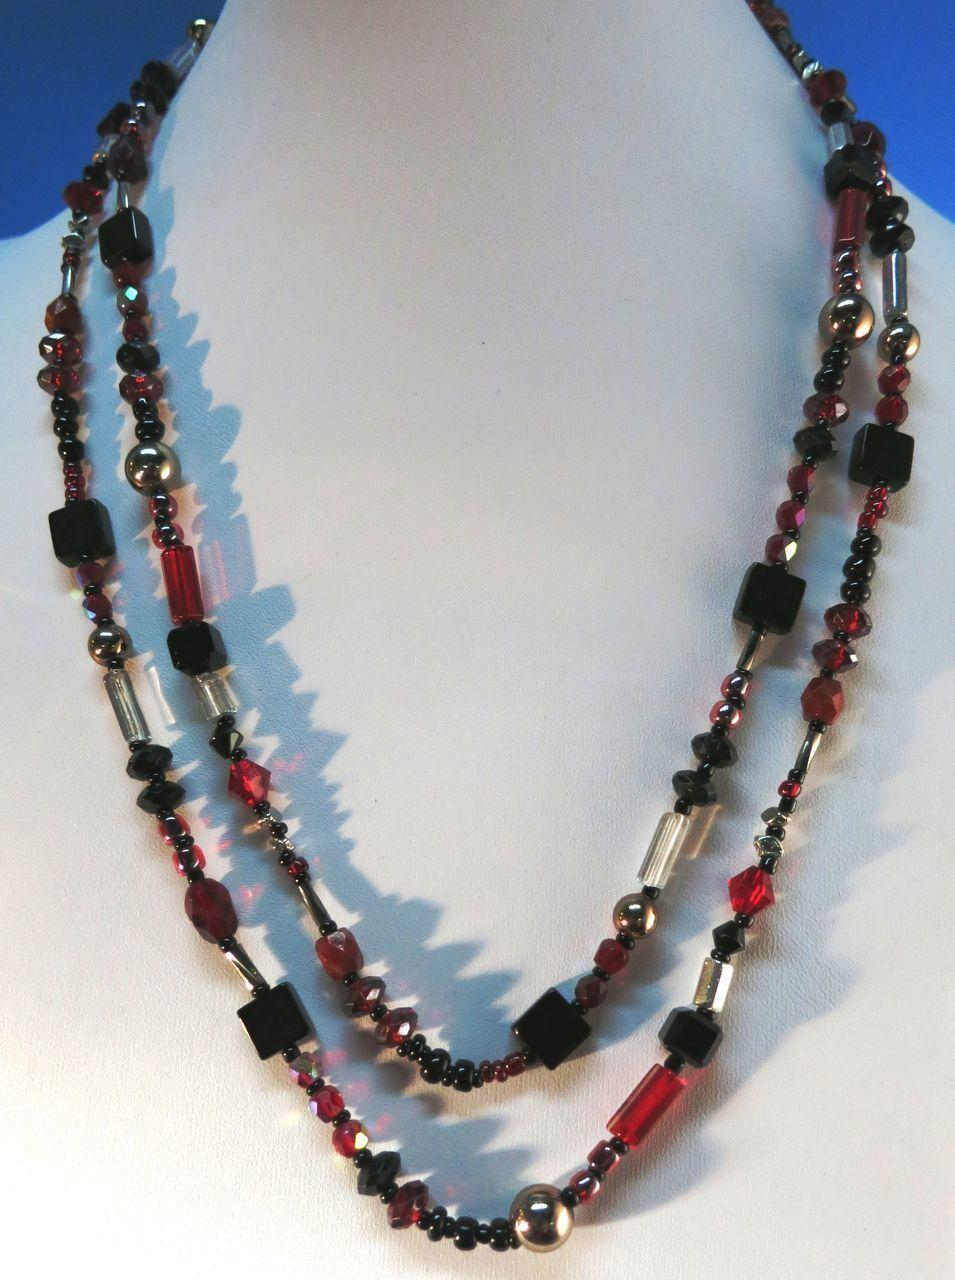 VINTAGE Endless String Glass Necklace 44 inches for Doubling or Knotting